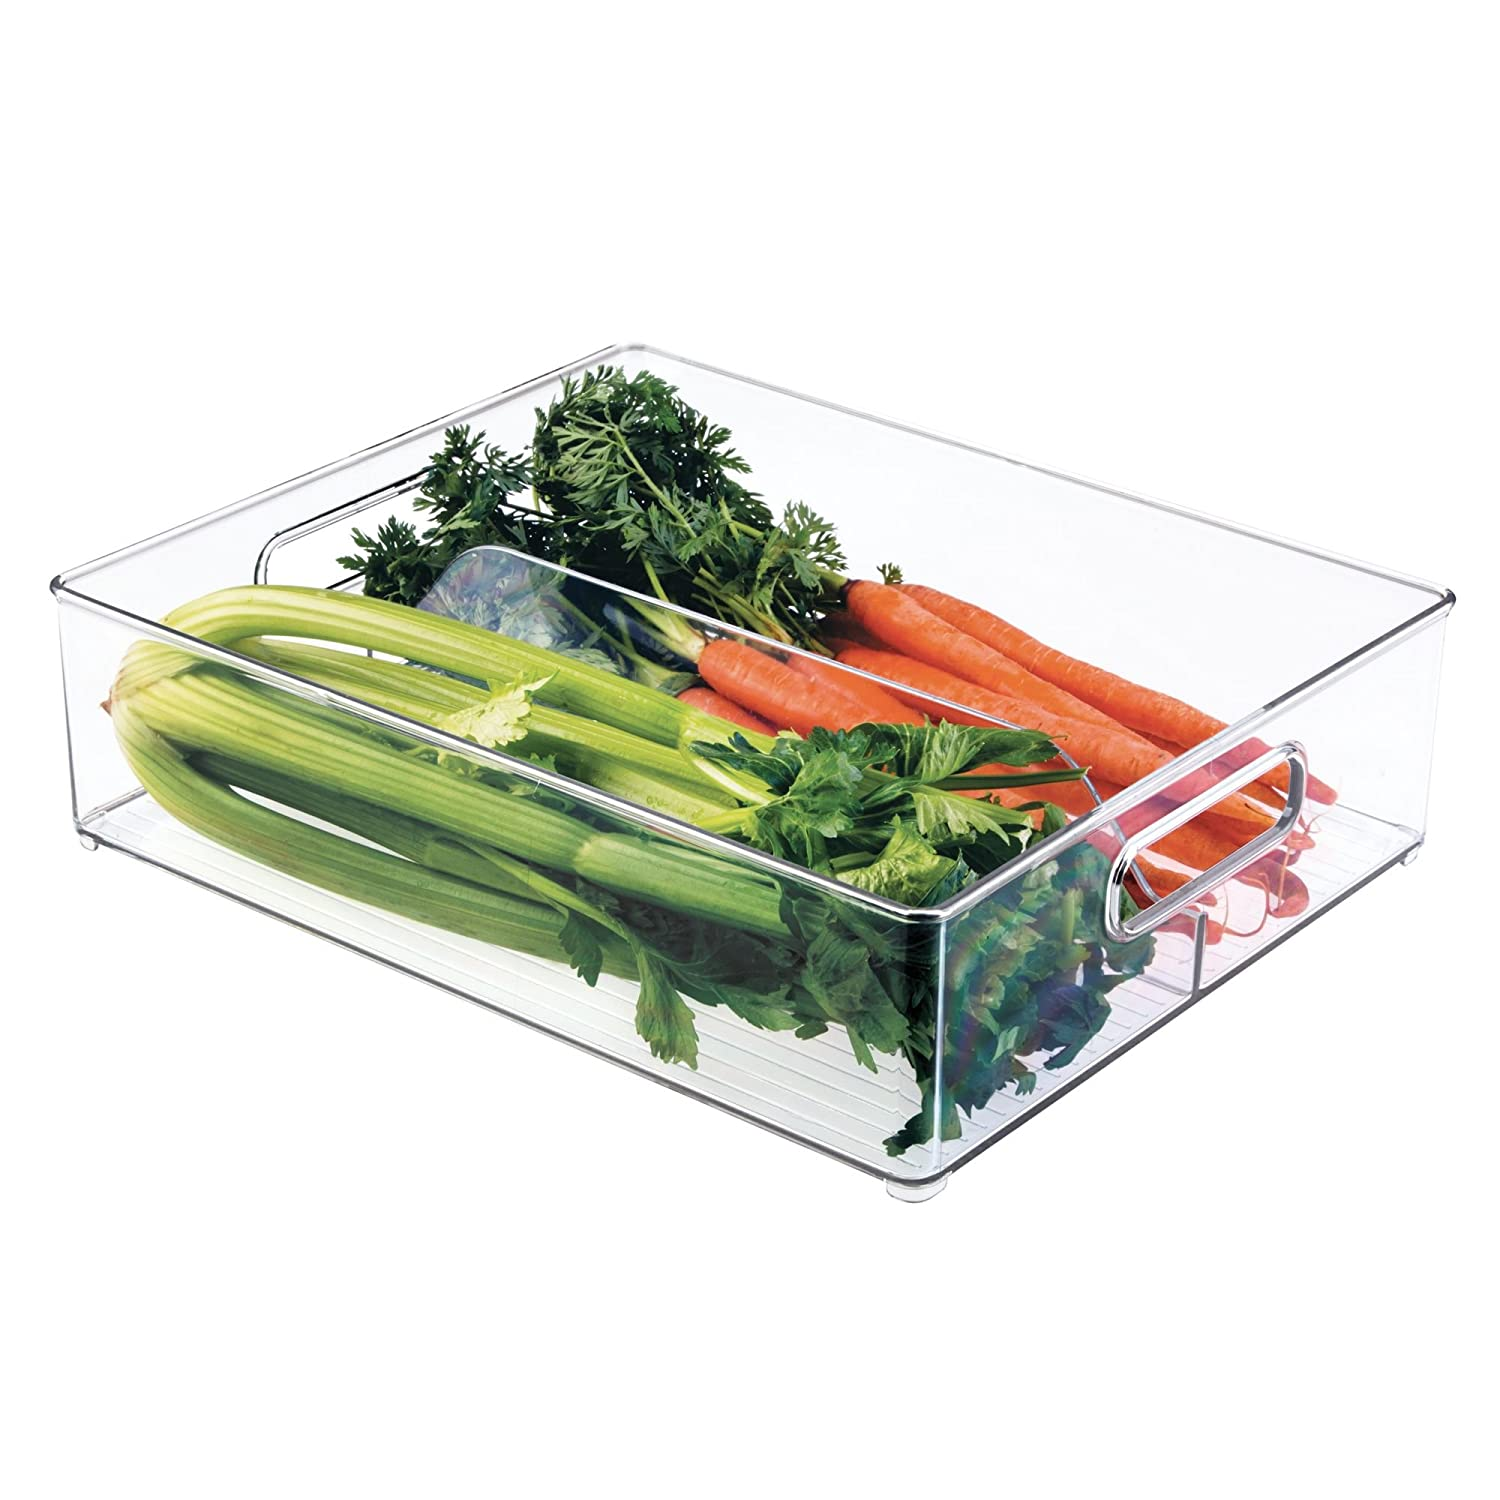 "Plastic Storage Organizer Bin Tote with Handles for Kitchen, Fridge, Freezer, Pantry, Under Sink, and Cabinet Organization, BPA-FreeInterDesignDivided7063012"" x 4"" x 14.5""Clear"